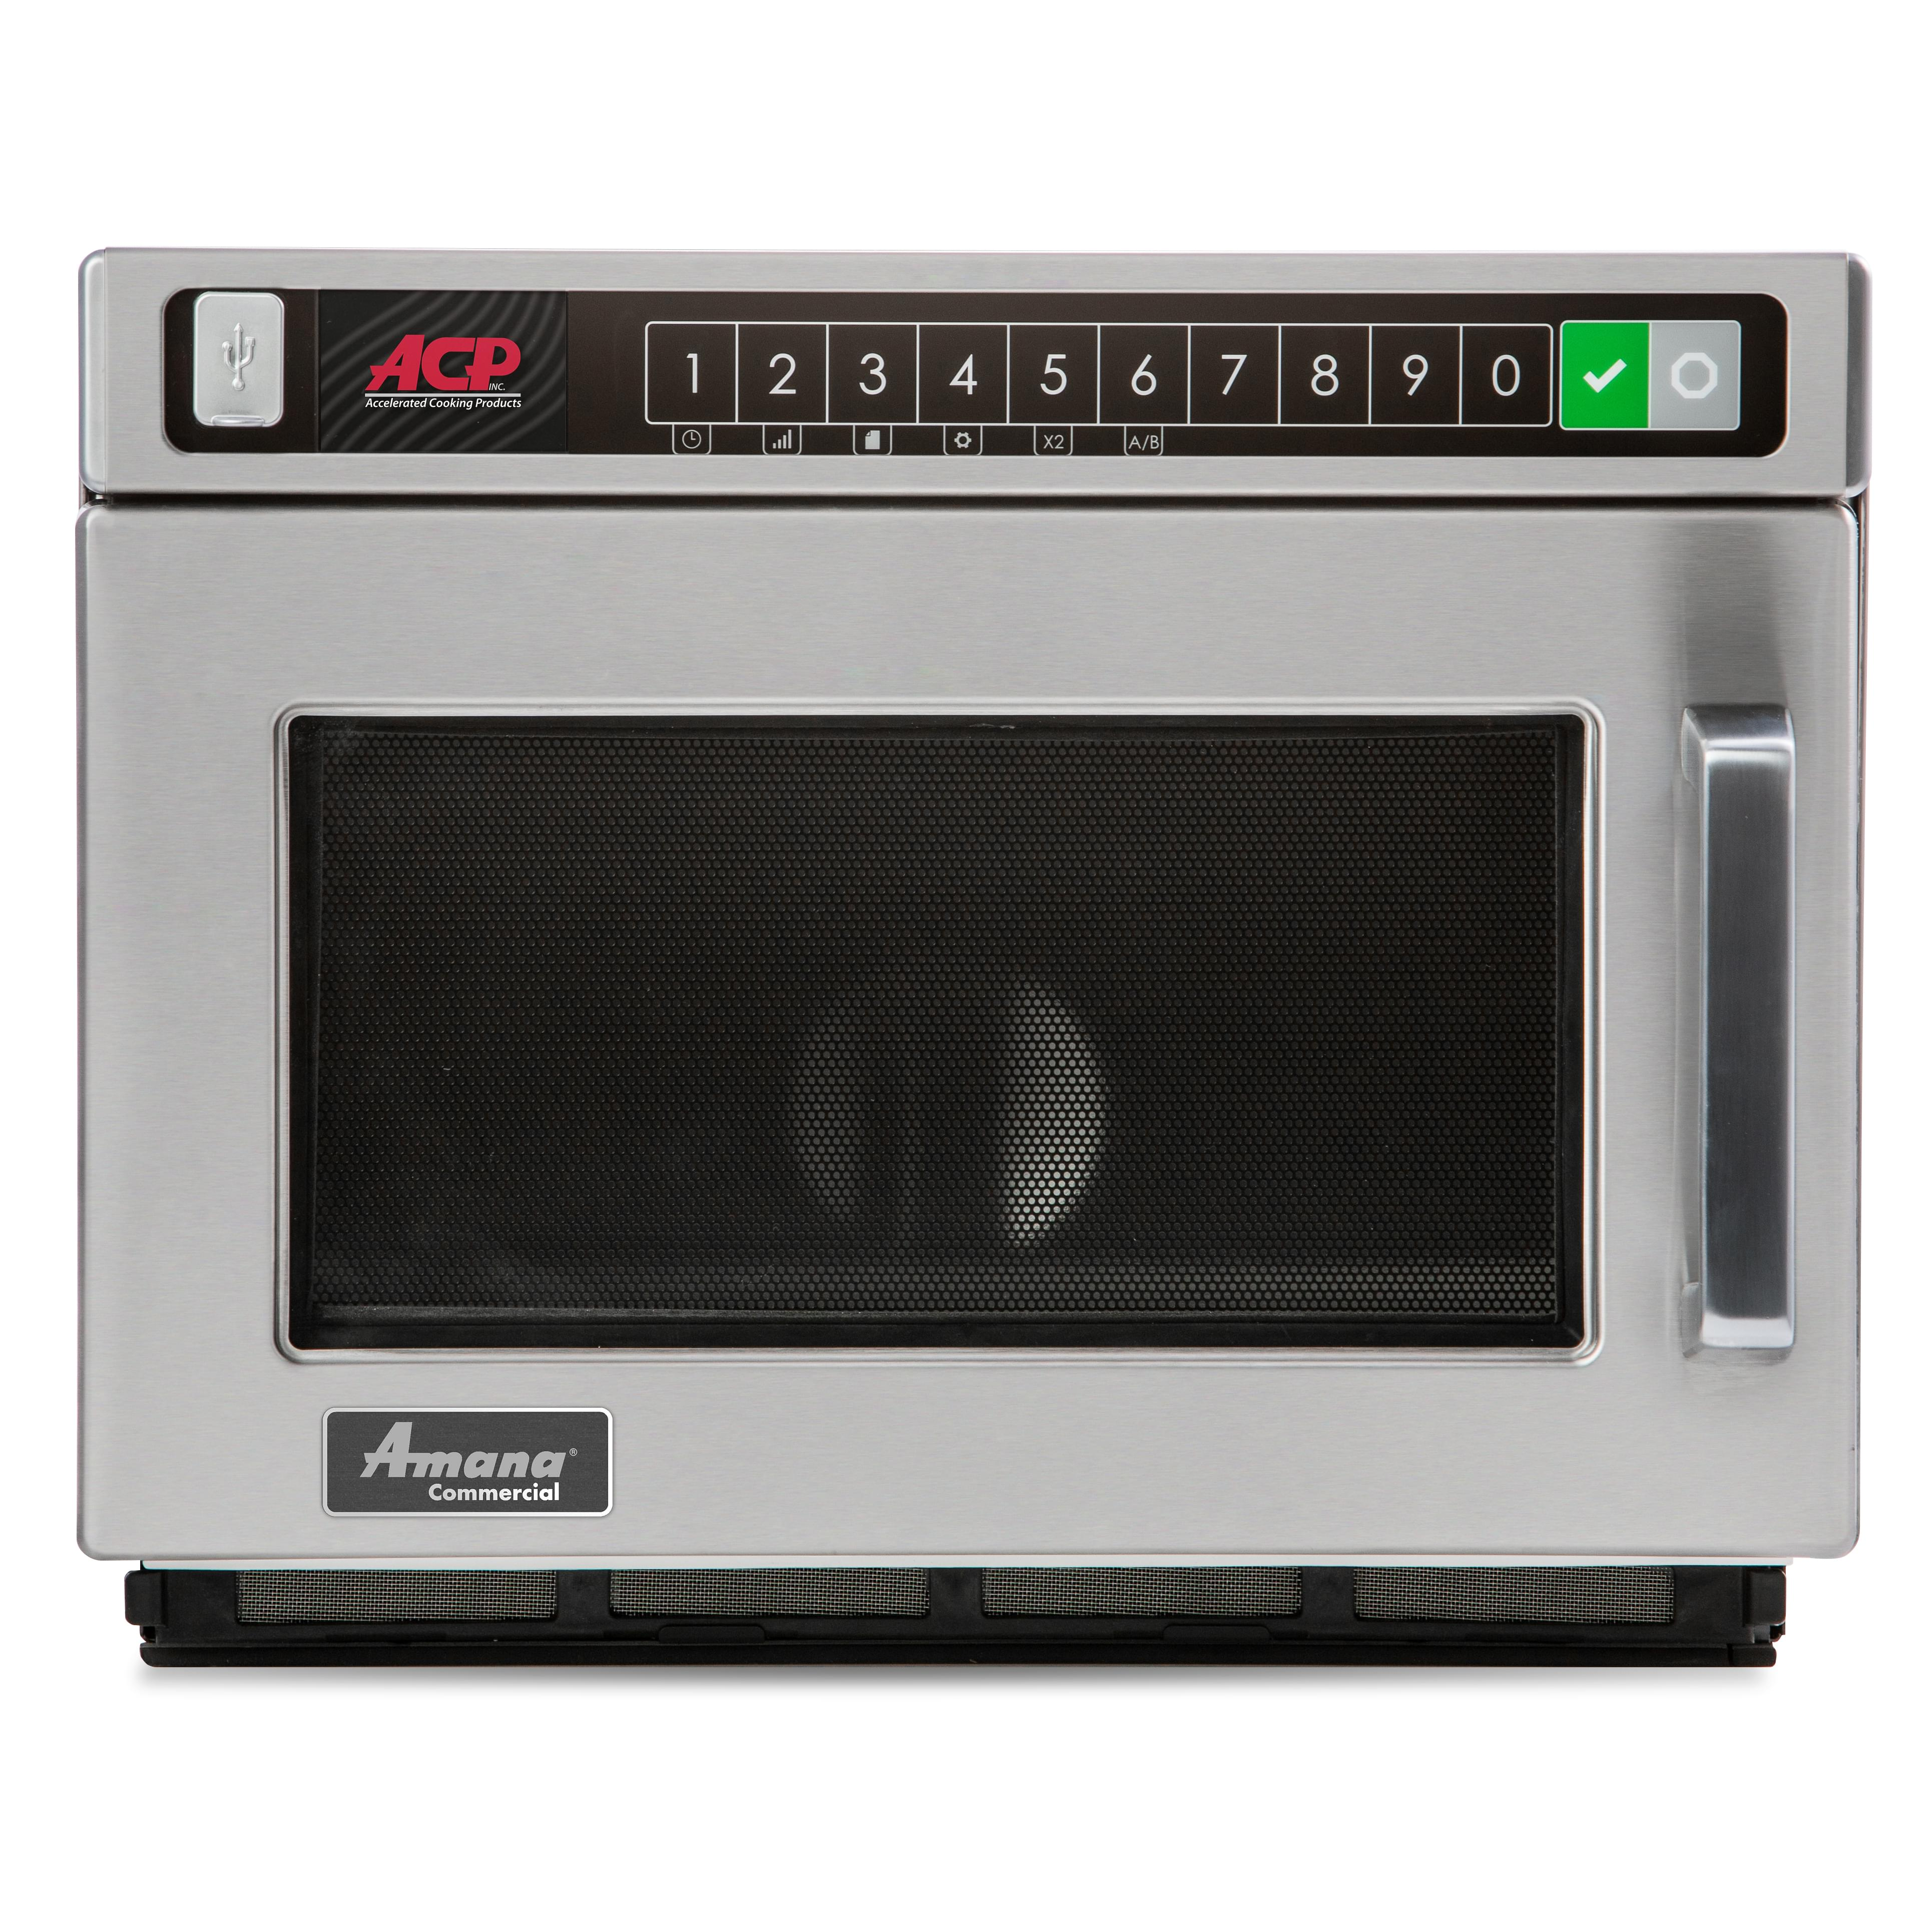 Acp Hdc212 Amana Commercial C Max Microwave Oven